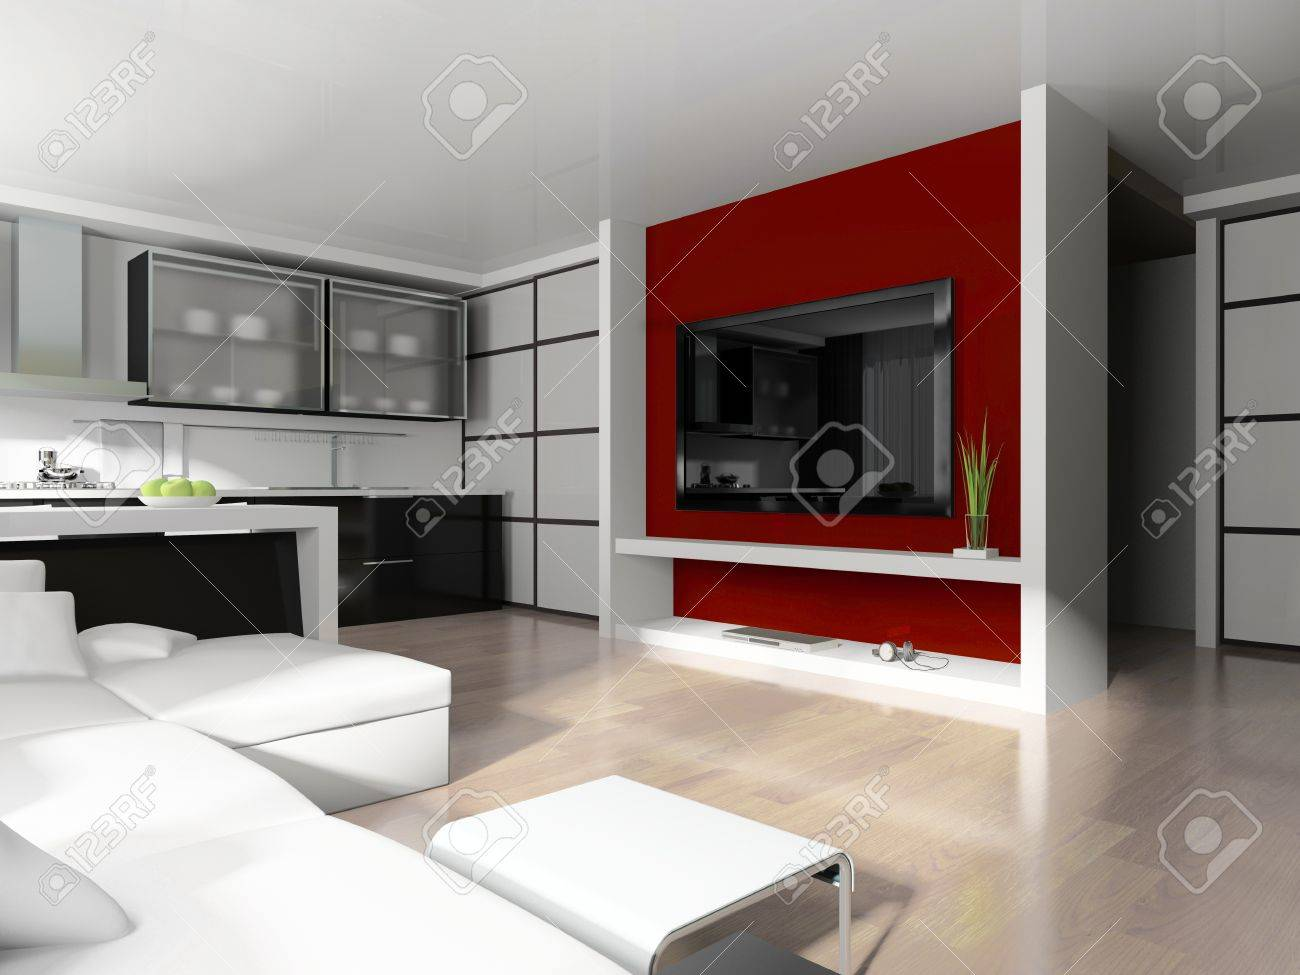 steel kitchen cabinetry cost wool how grease how to calculate linear feet for stock photo modern white drawing room 3d image